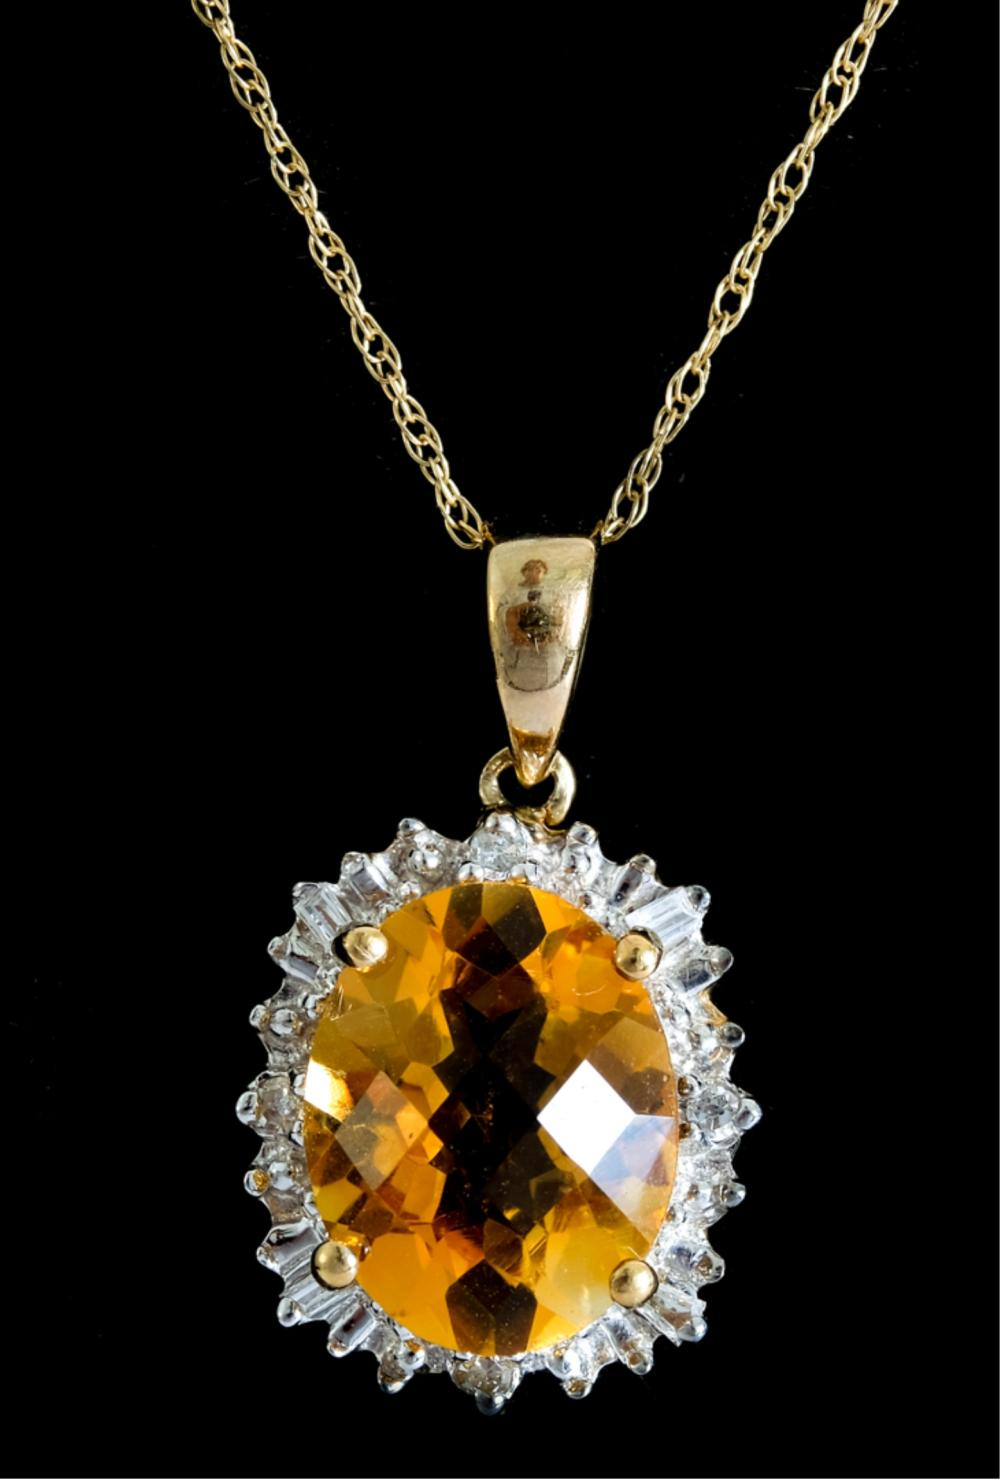 10k YG Diamond & Citrine Pendant Necklace